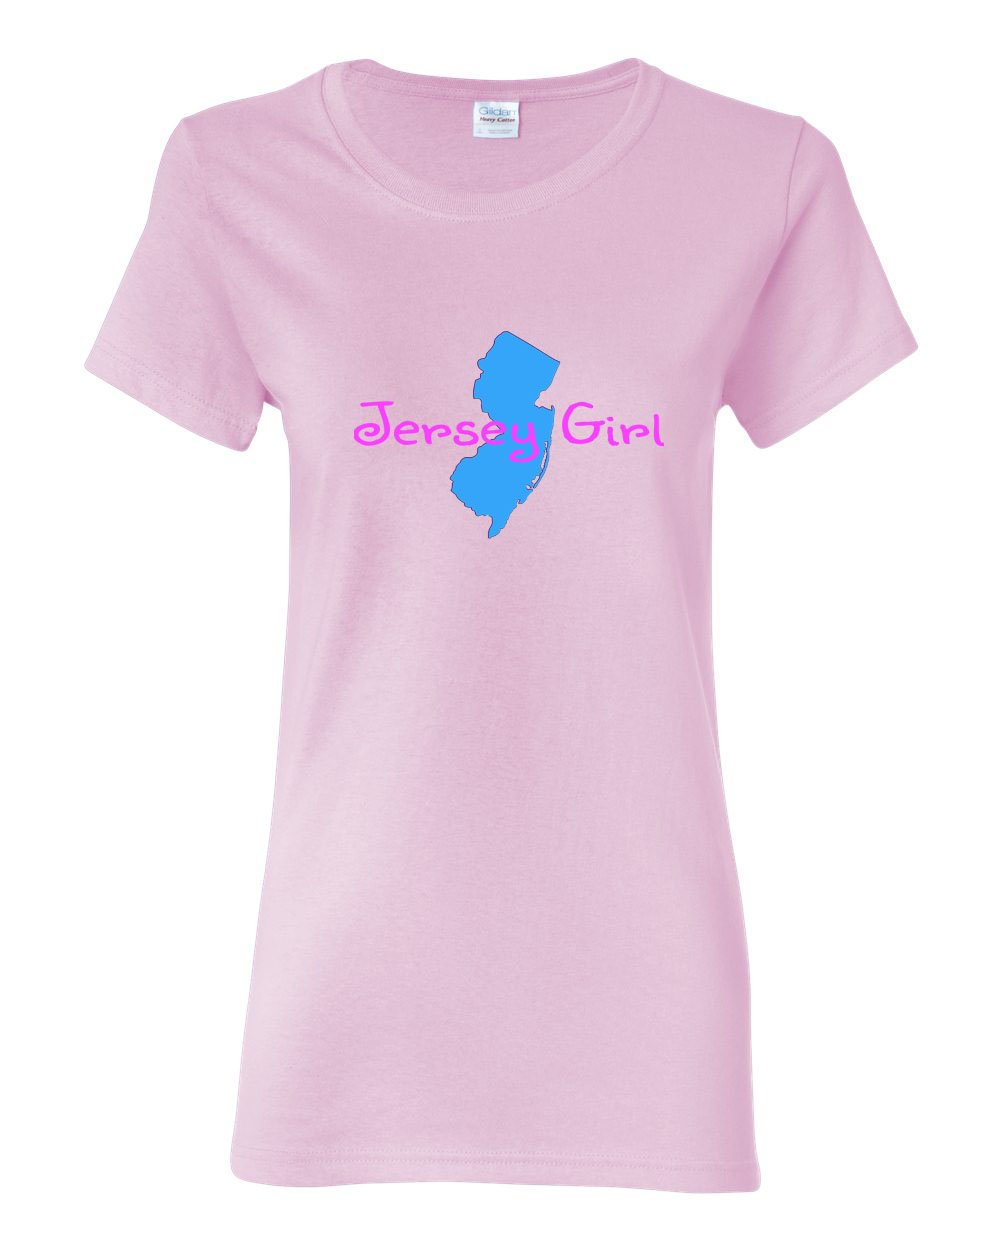 Jersey Girl LADIES Missy-Fit T-Shirt